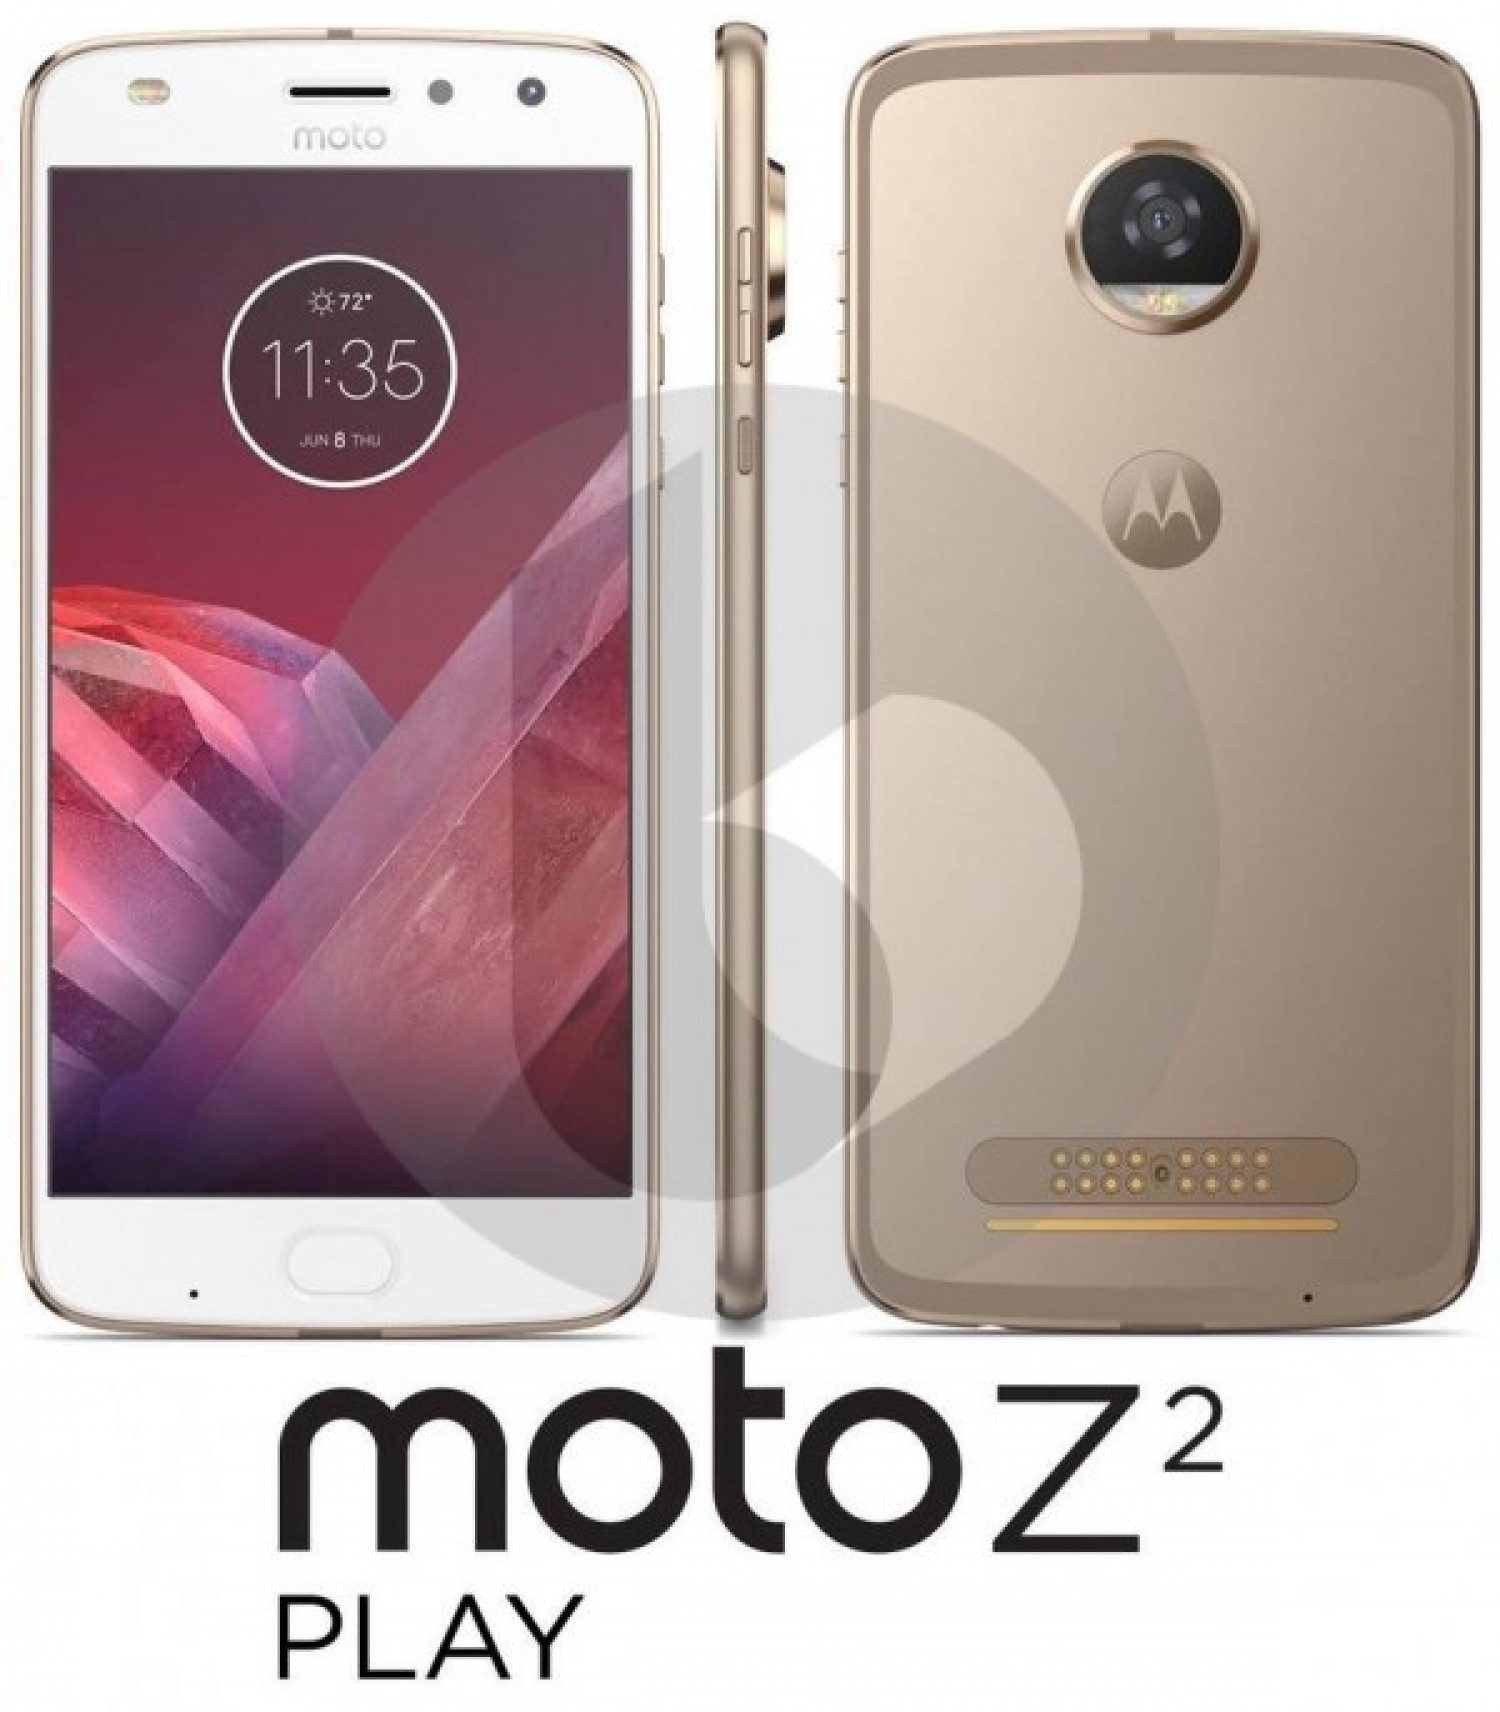 Moto Z2 Play image leaked, Moto Z-like slim design rolled Infographic